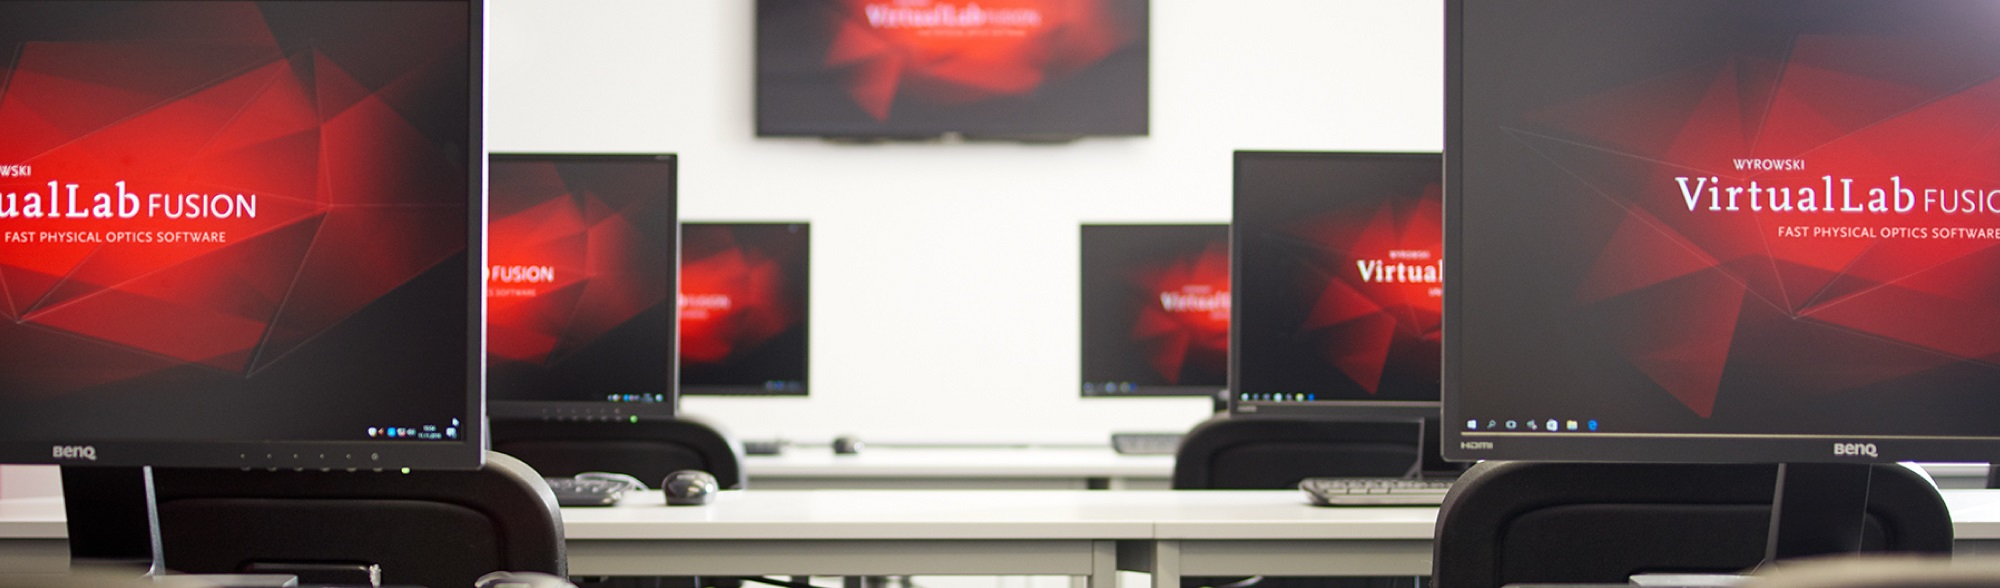 Several screens in our seminar room for the implementation of a VirtualLab Fusion training